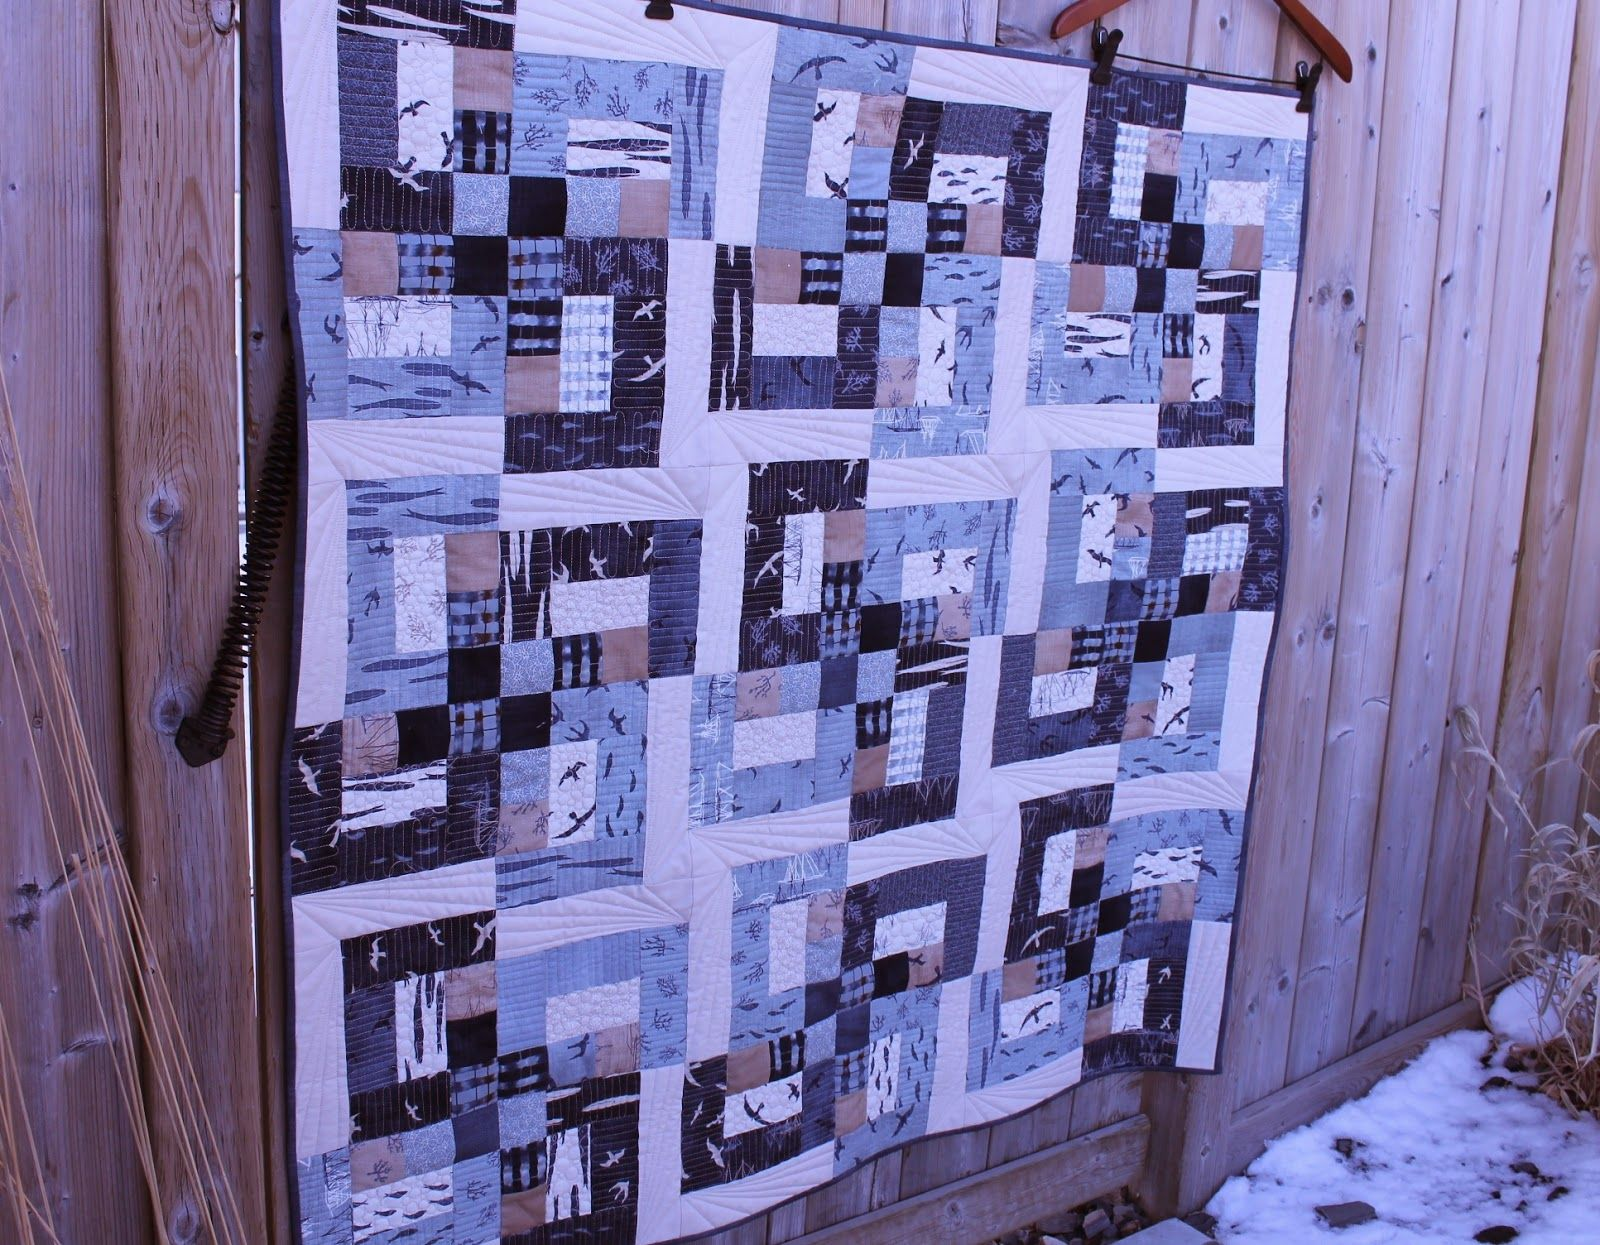 Babyzimmer Maritim ~ Millions of thoughts and urban quiltworks: moda bake shop